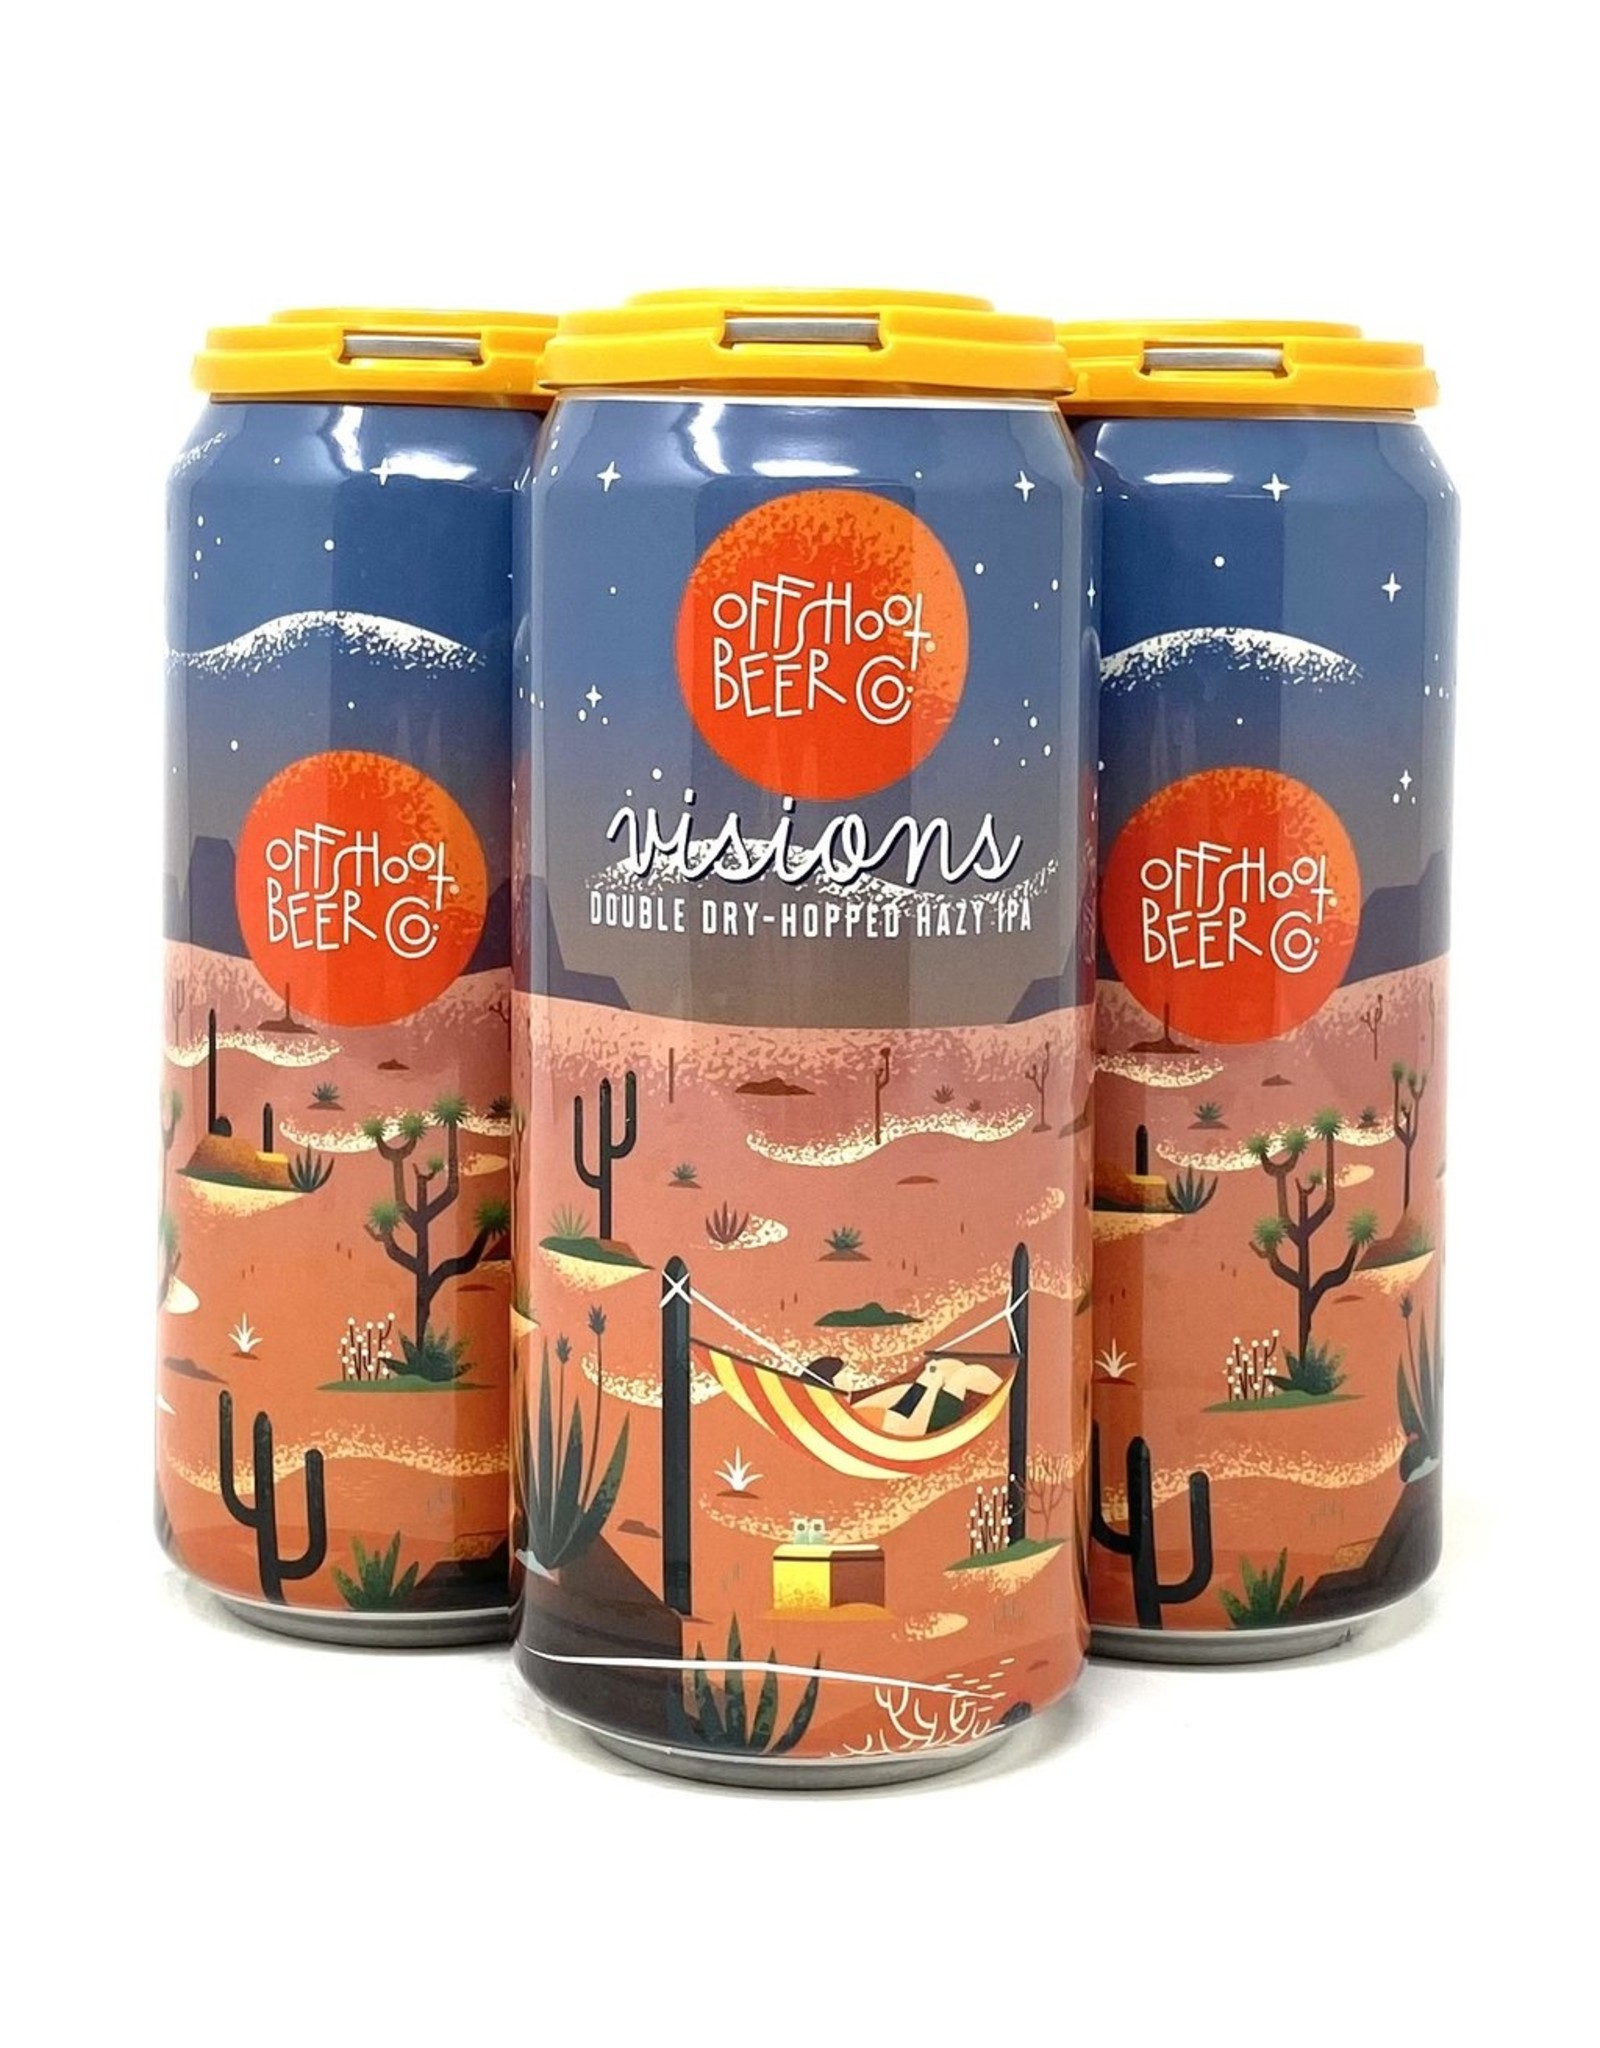 Offshoot Beer Co. Visions NEIPA 16oz 4pk Cans